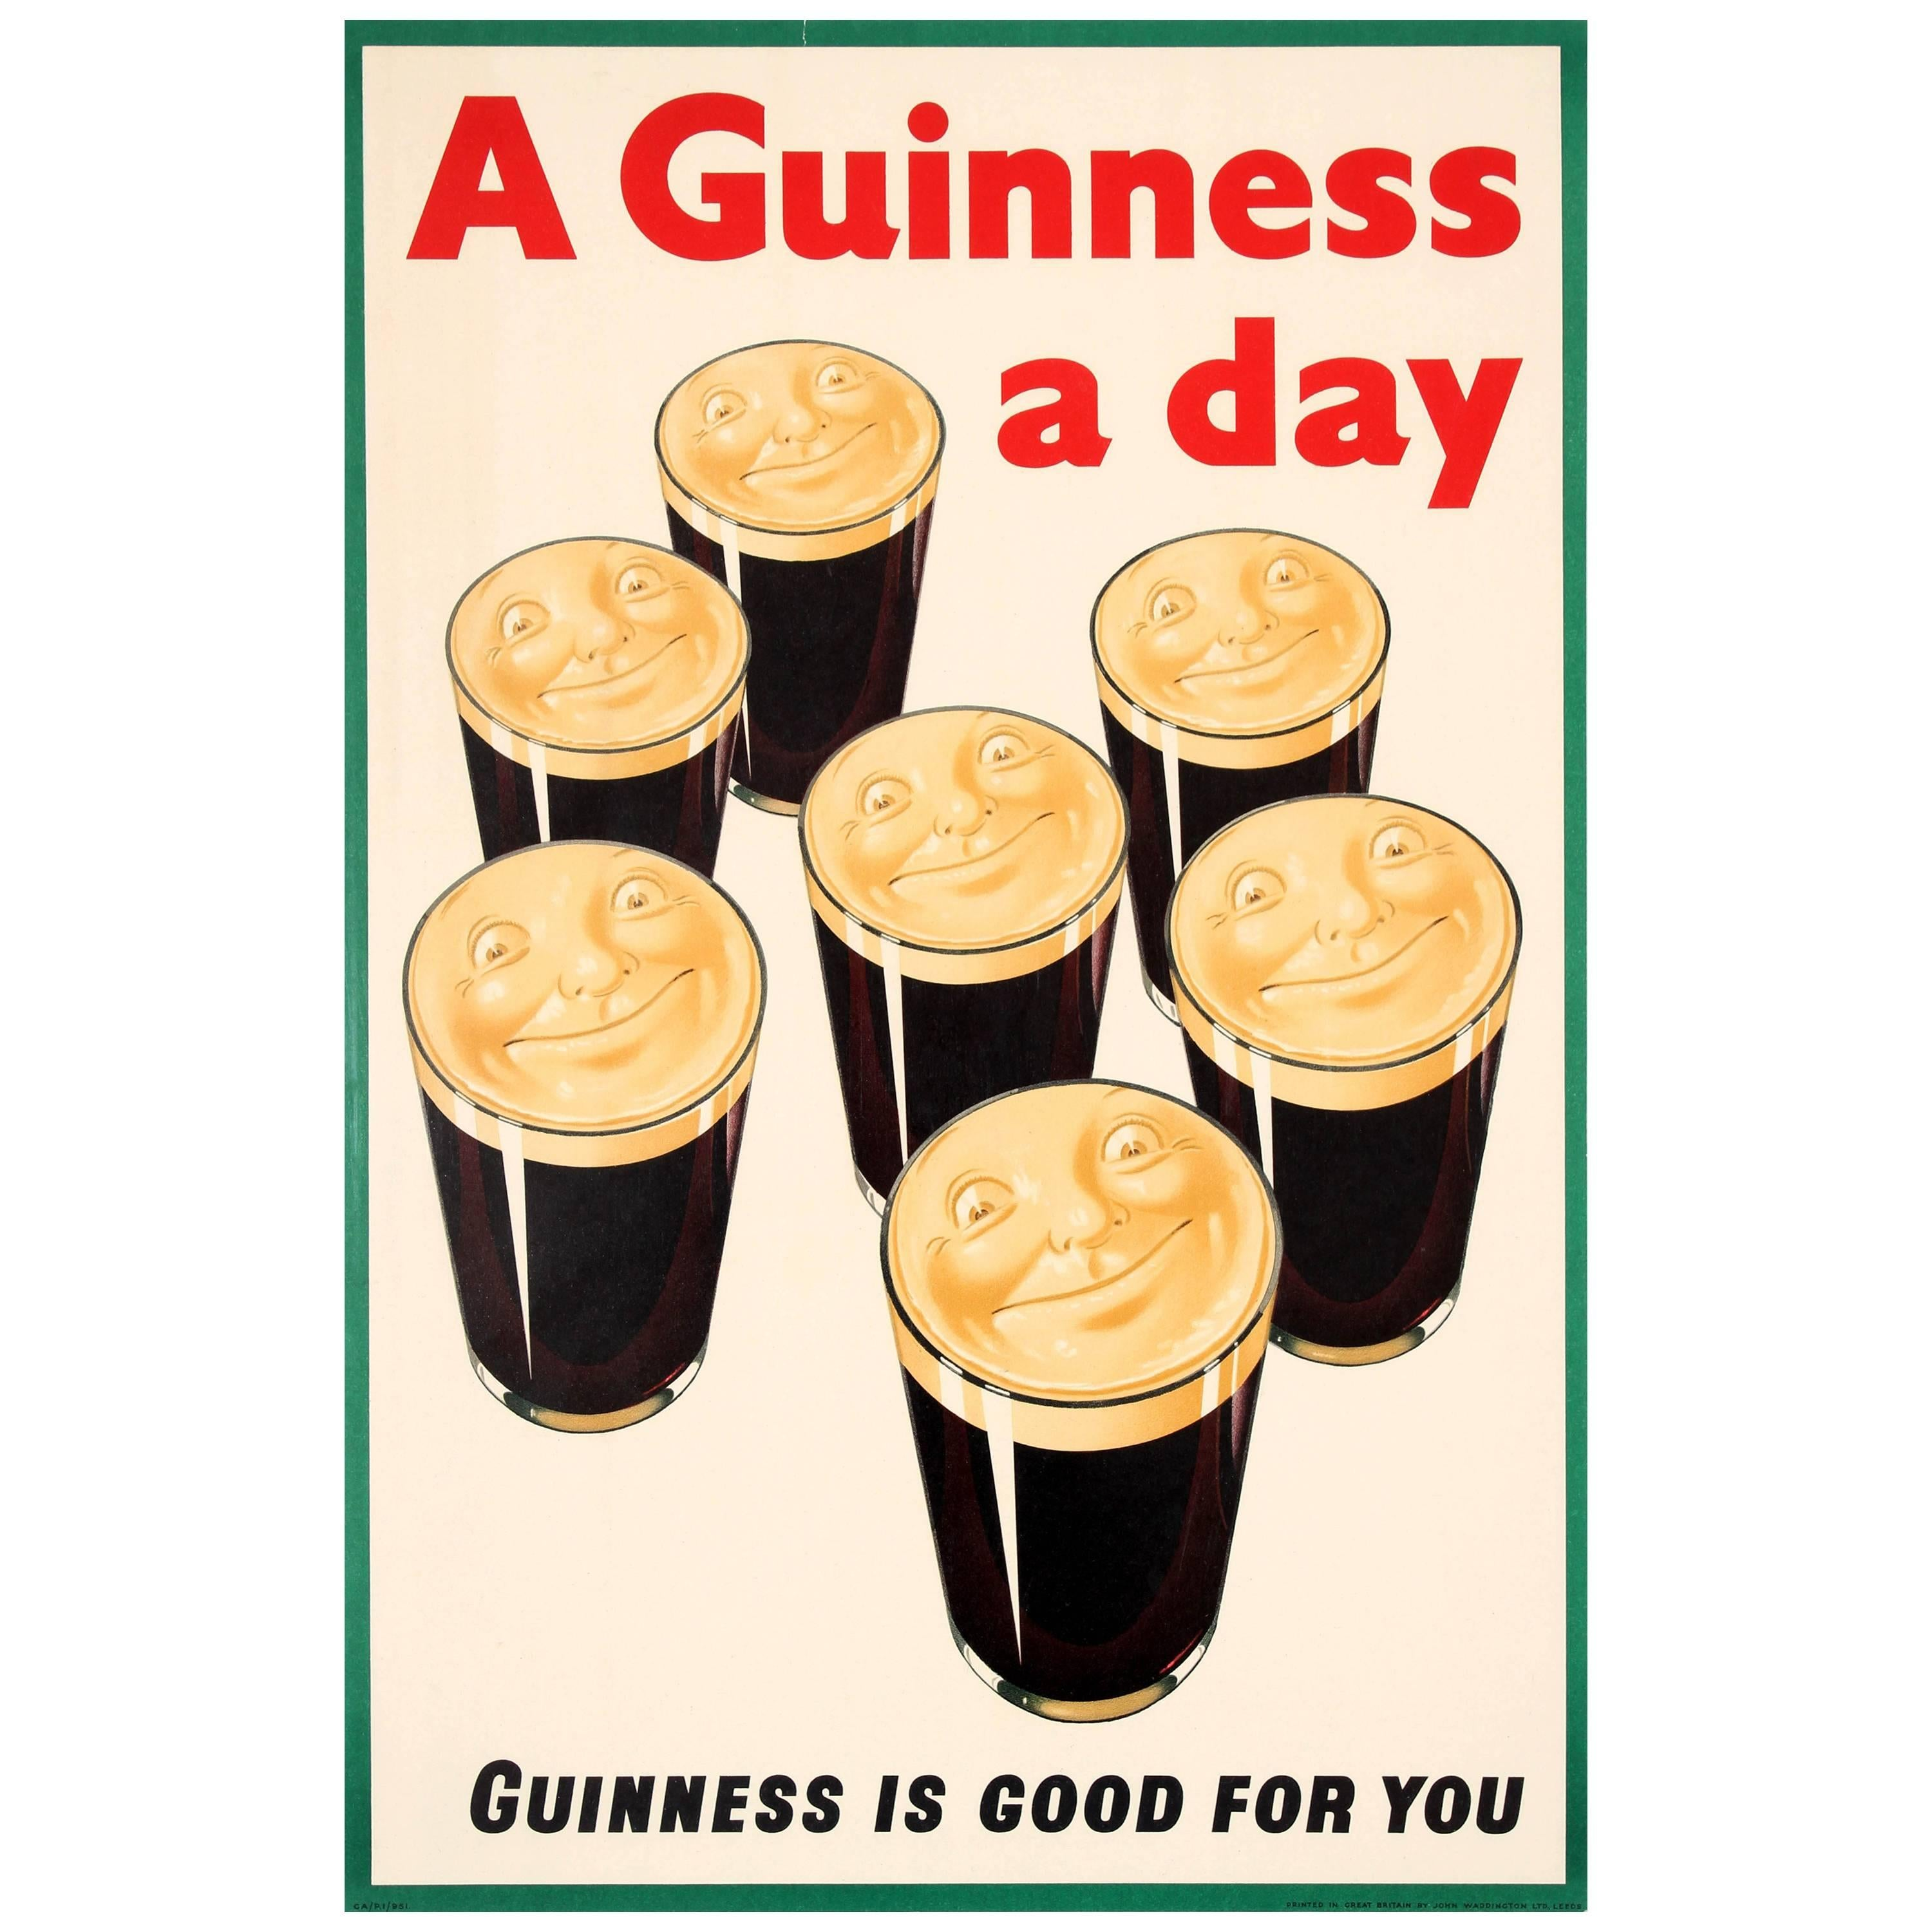 Original Vintage Iconic Drink Poster - A Guinness A Day Guinness Is ...